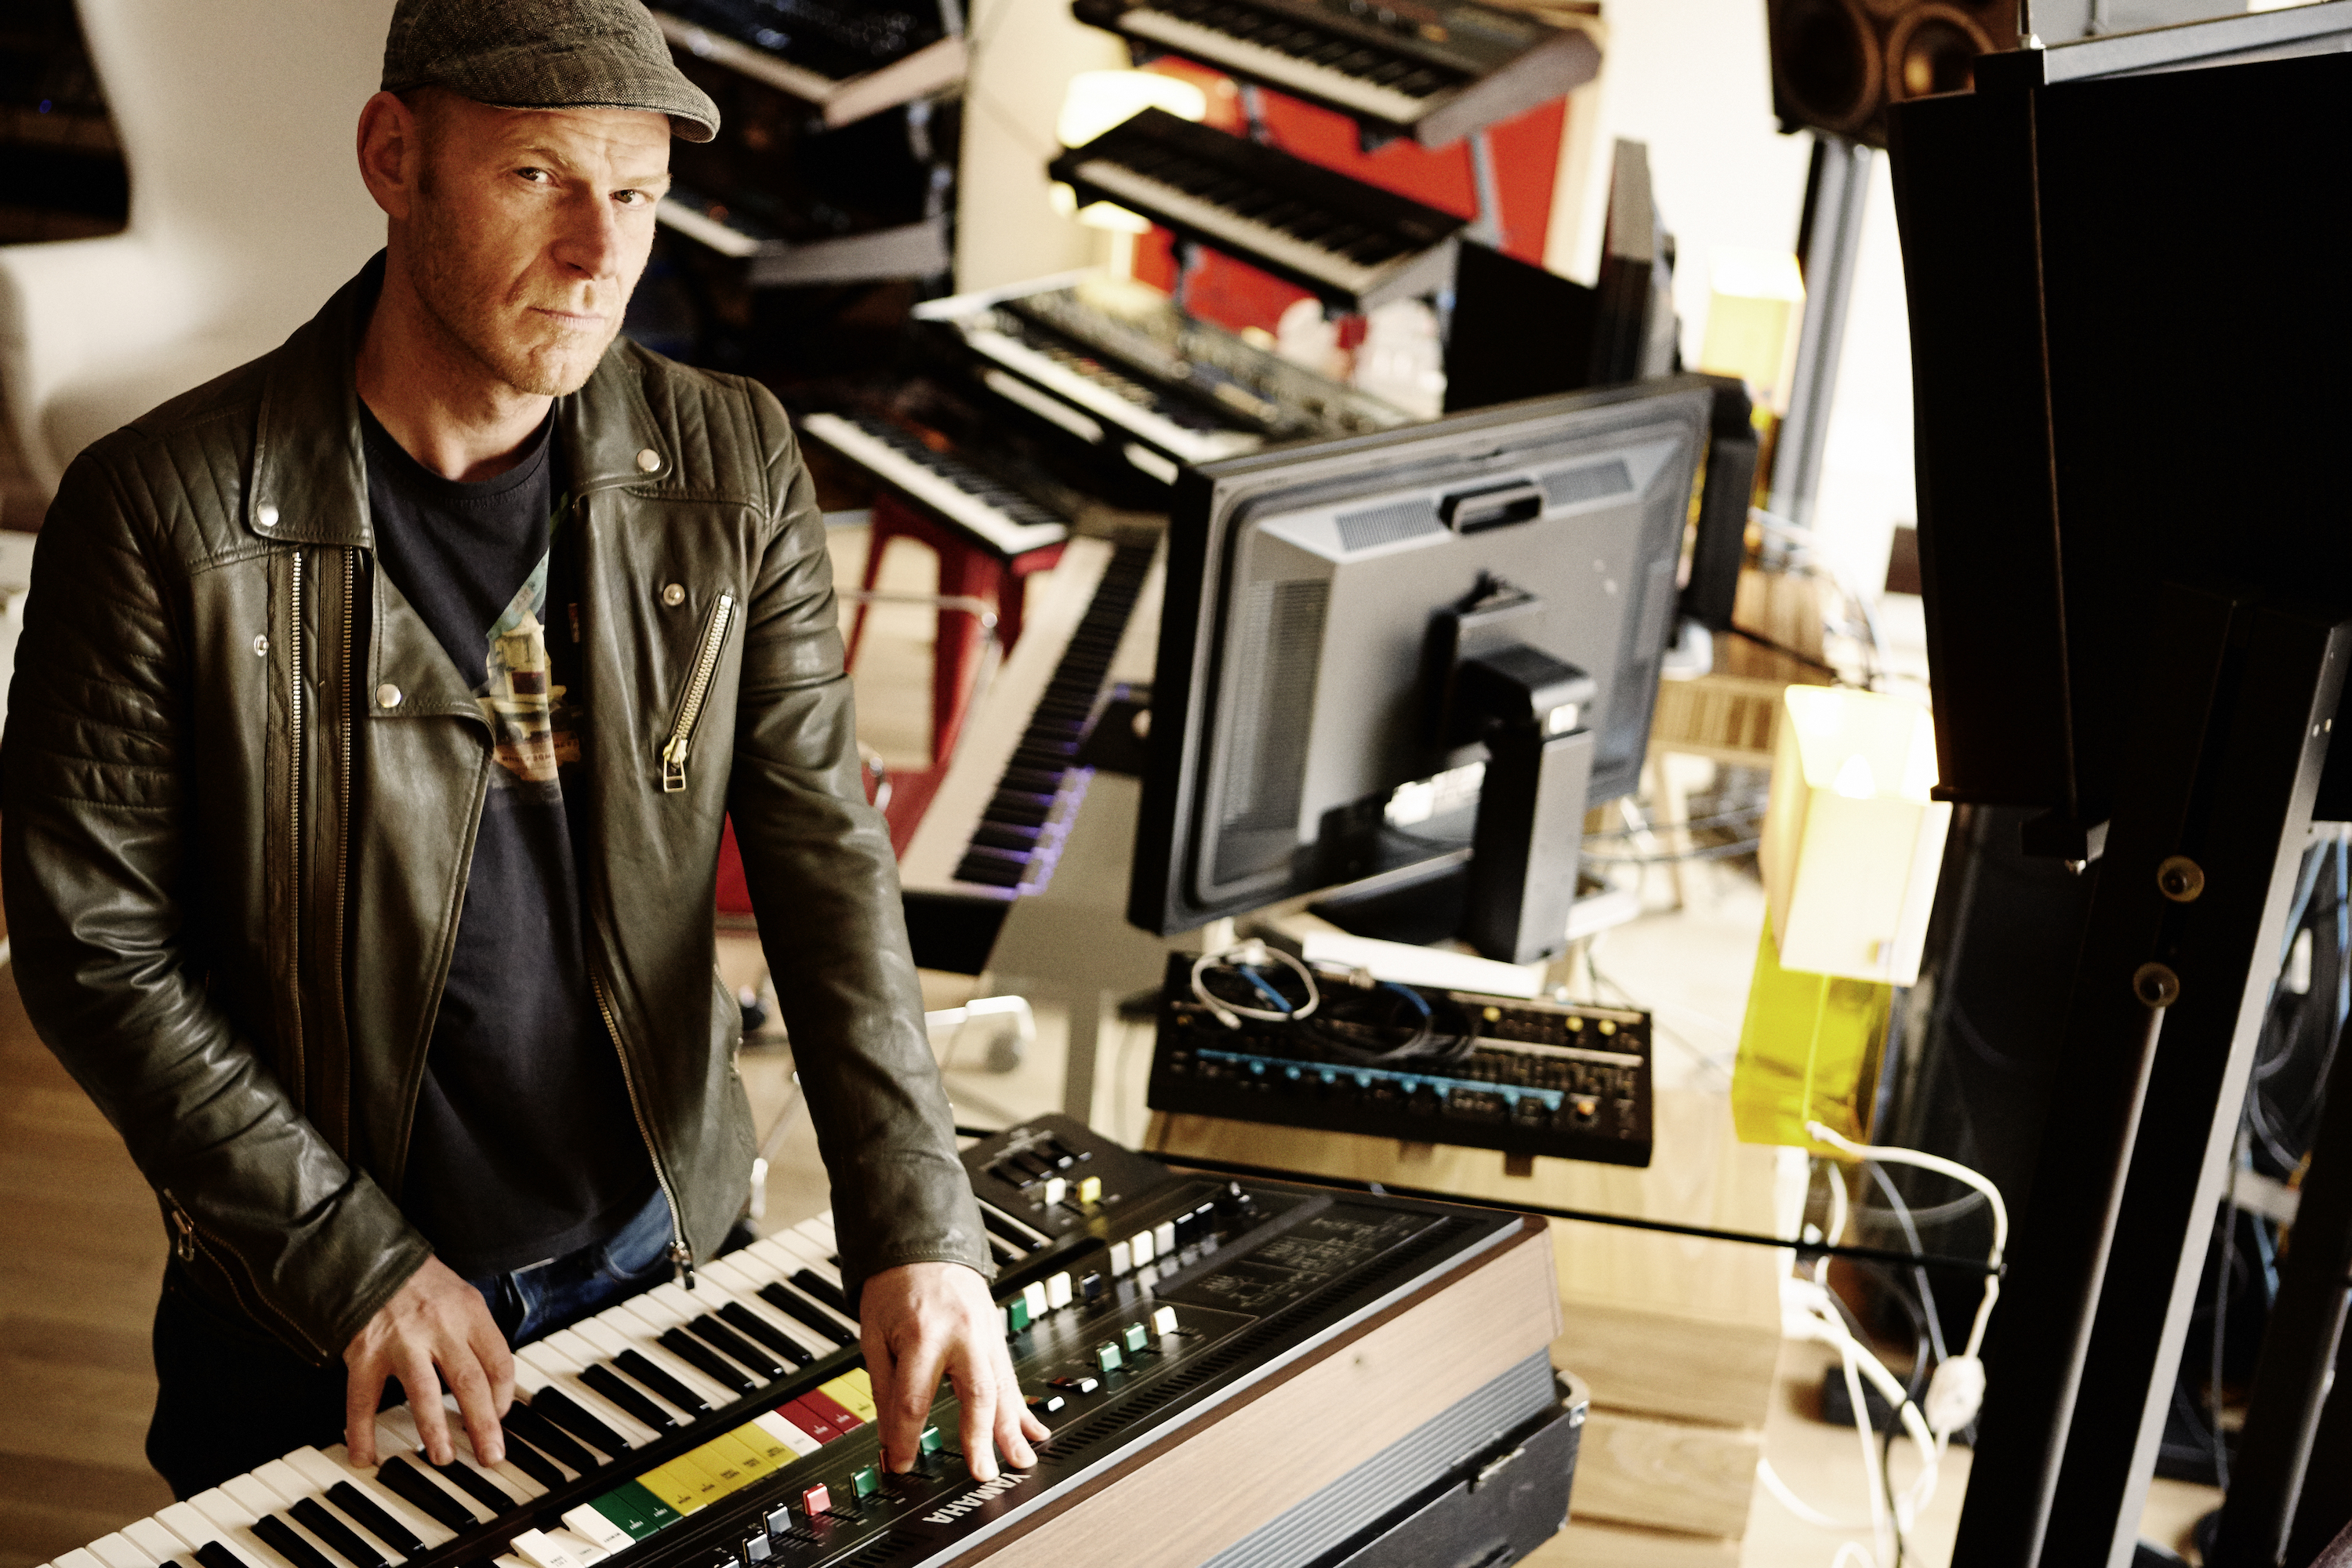 A man wearing a cap and a leather jacket is surrounded by keyboards and synthesizers.